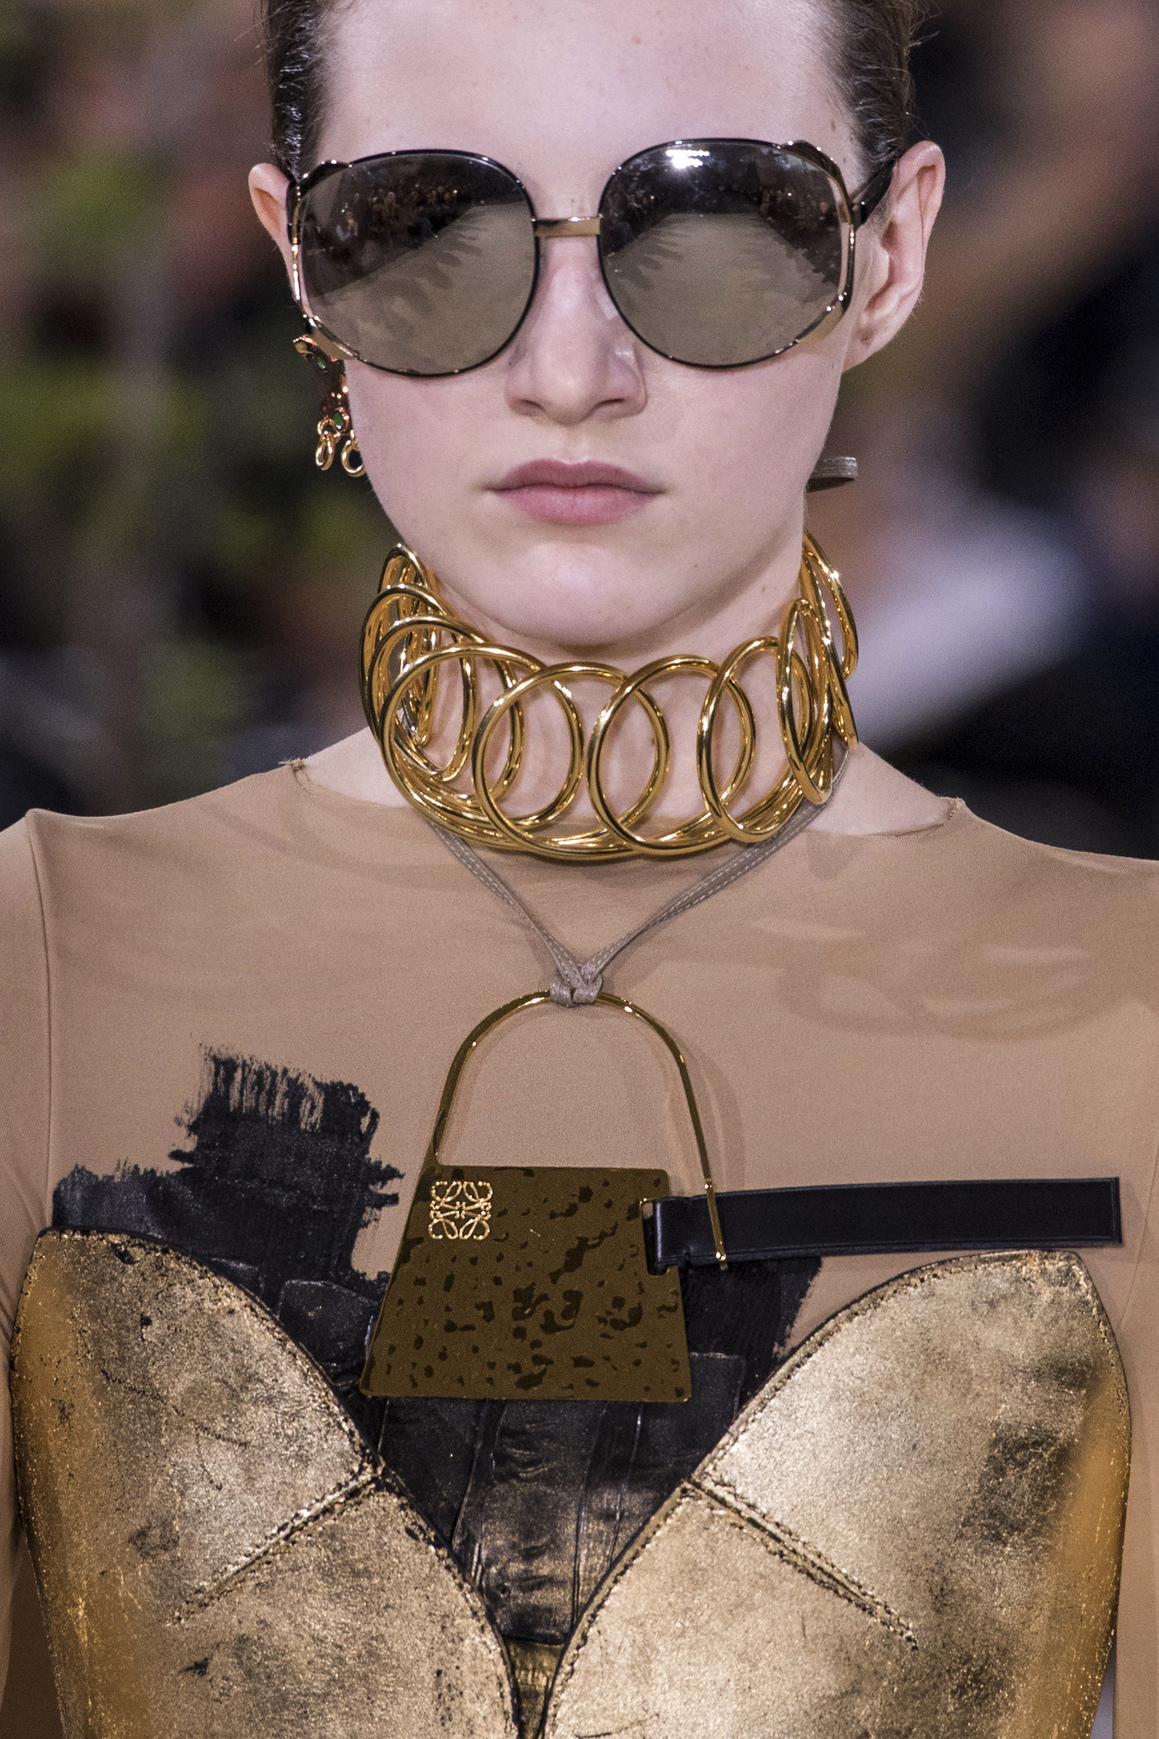 Chokers made appearances at several Fall/Winter 2016 runway shows, including that of Loewe.